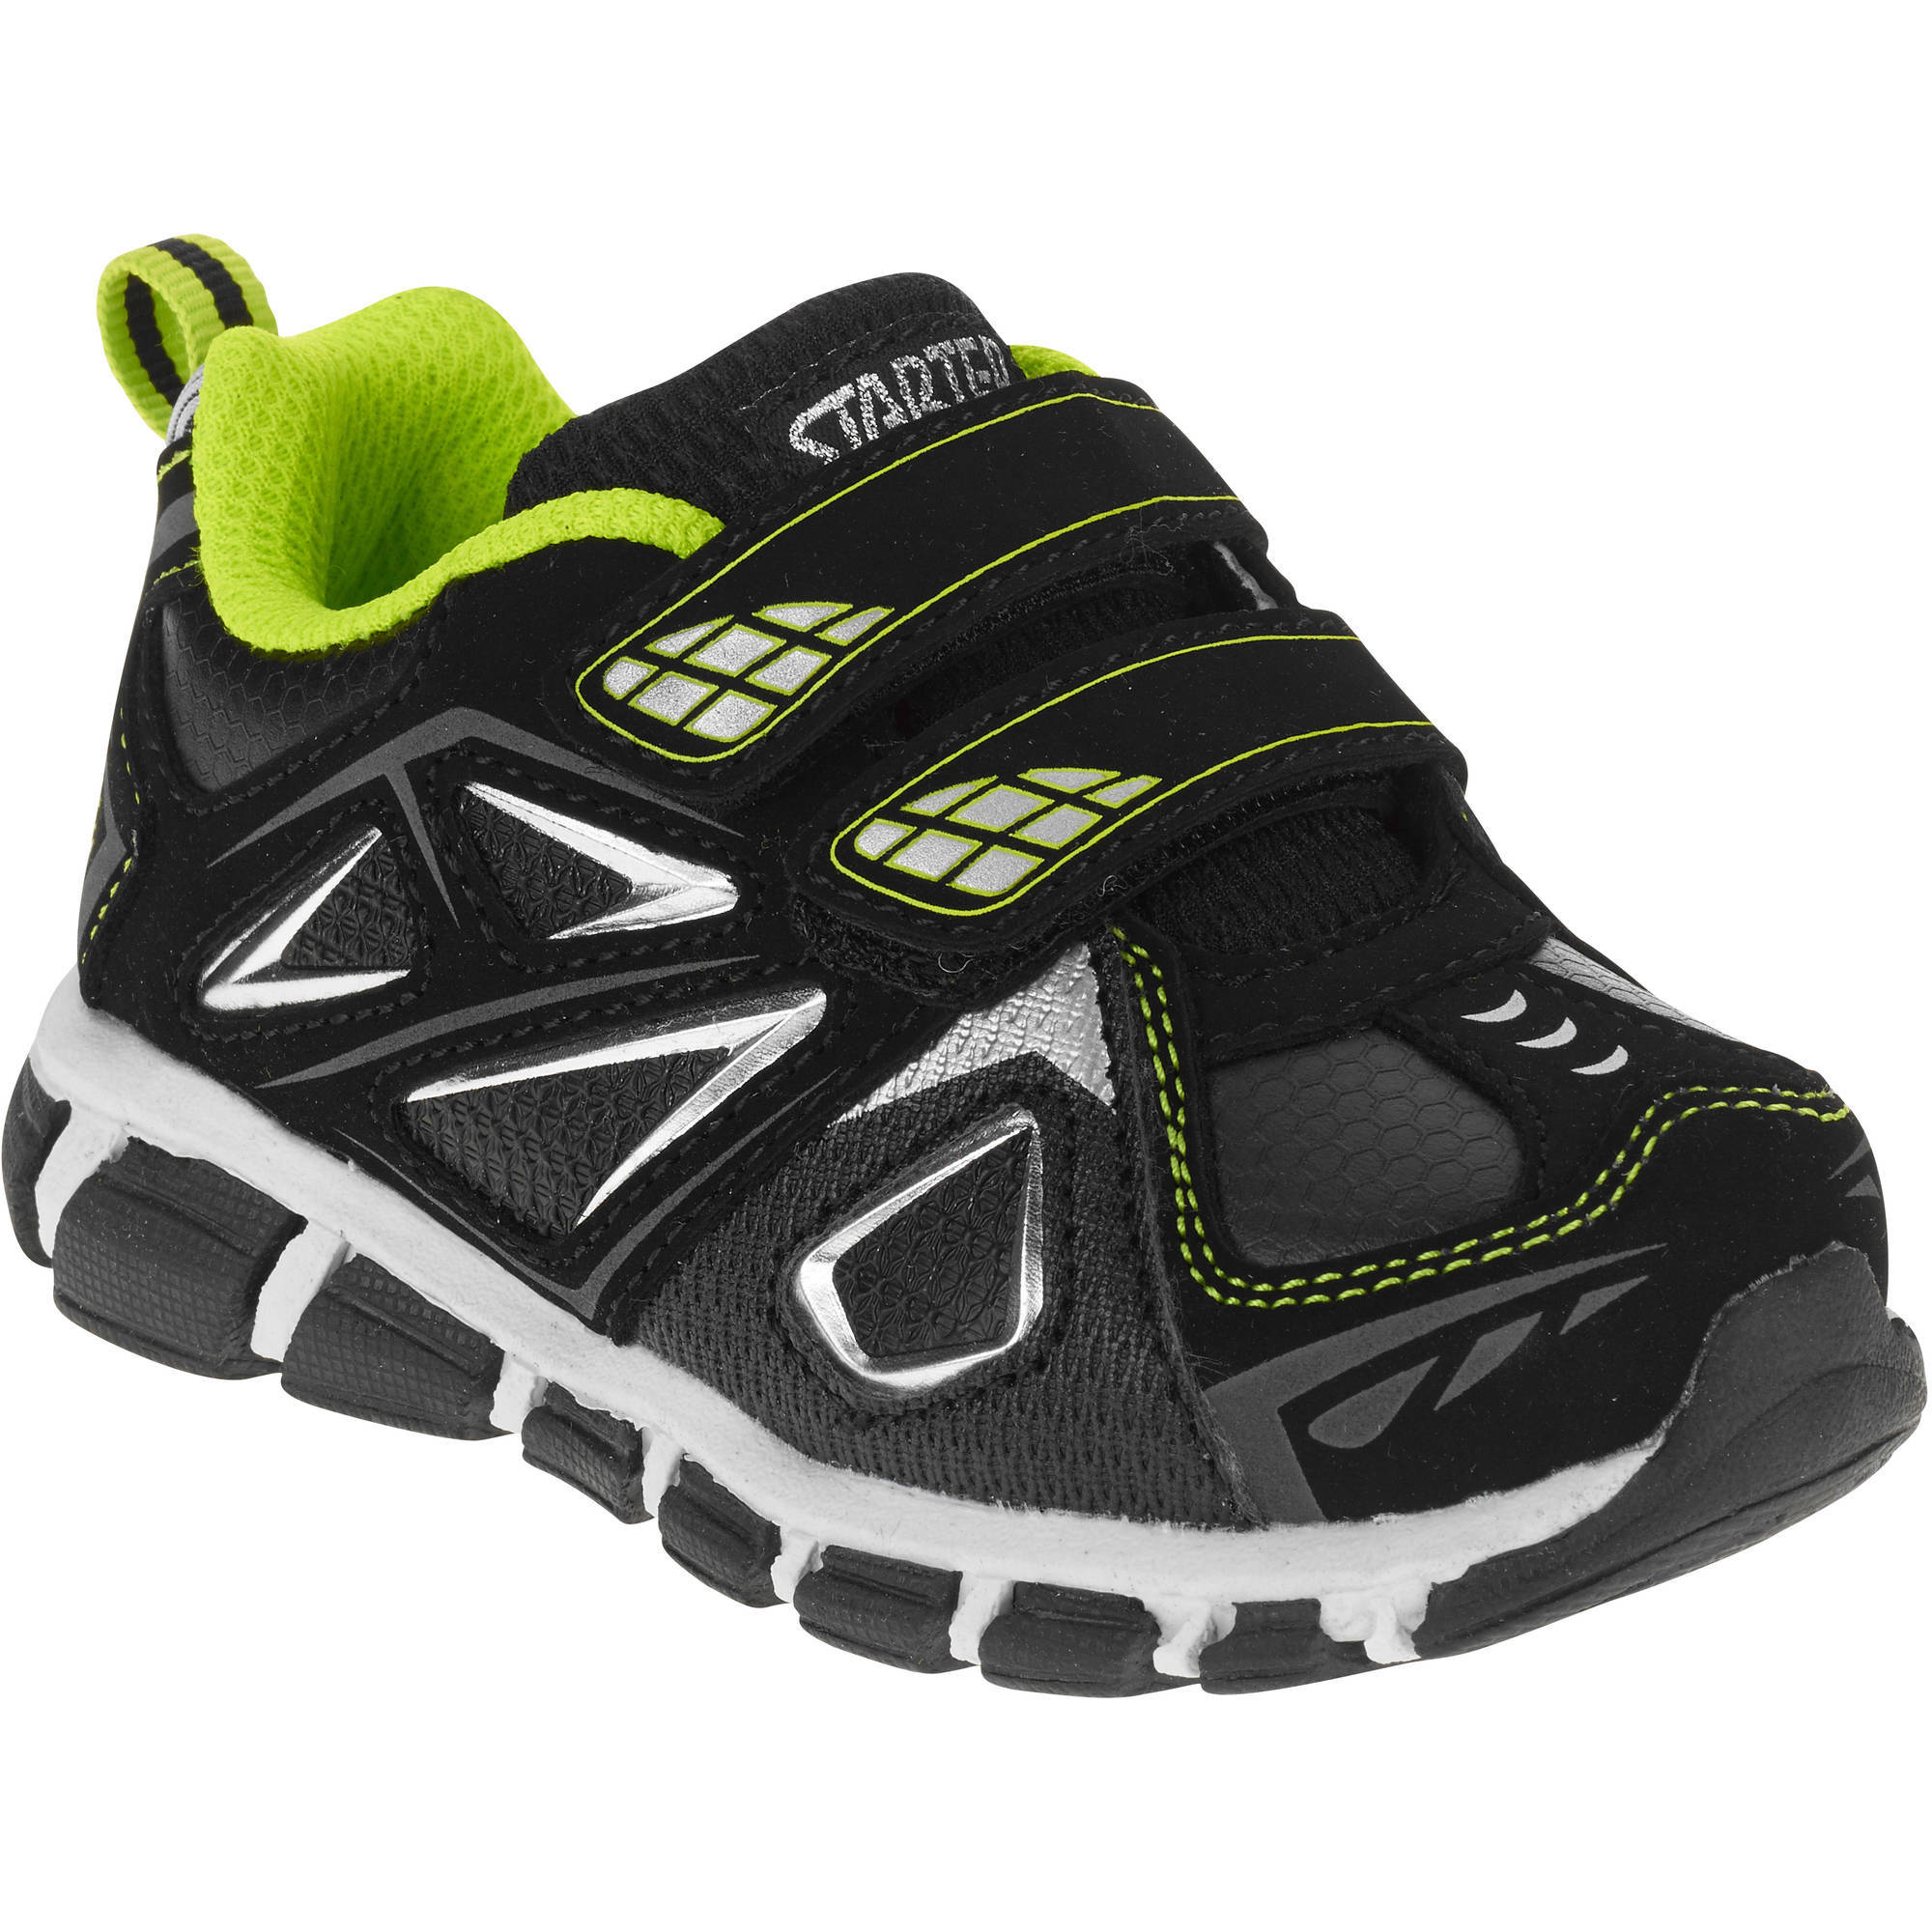 Starter Toddler Boys' 2 Strap Athletic Shoe